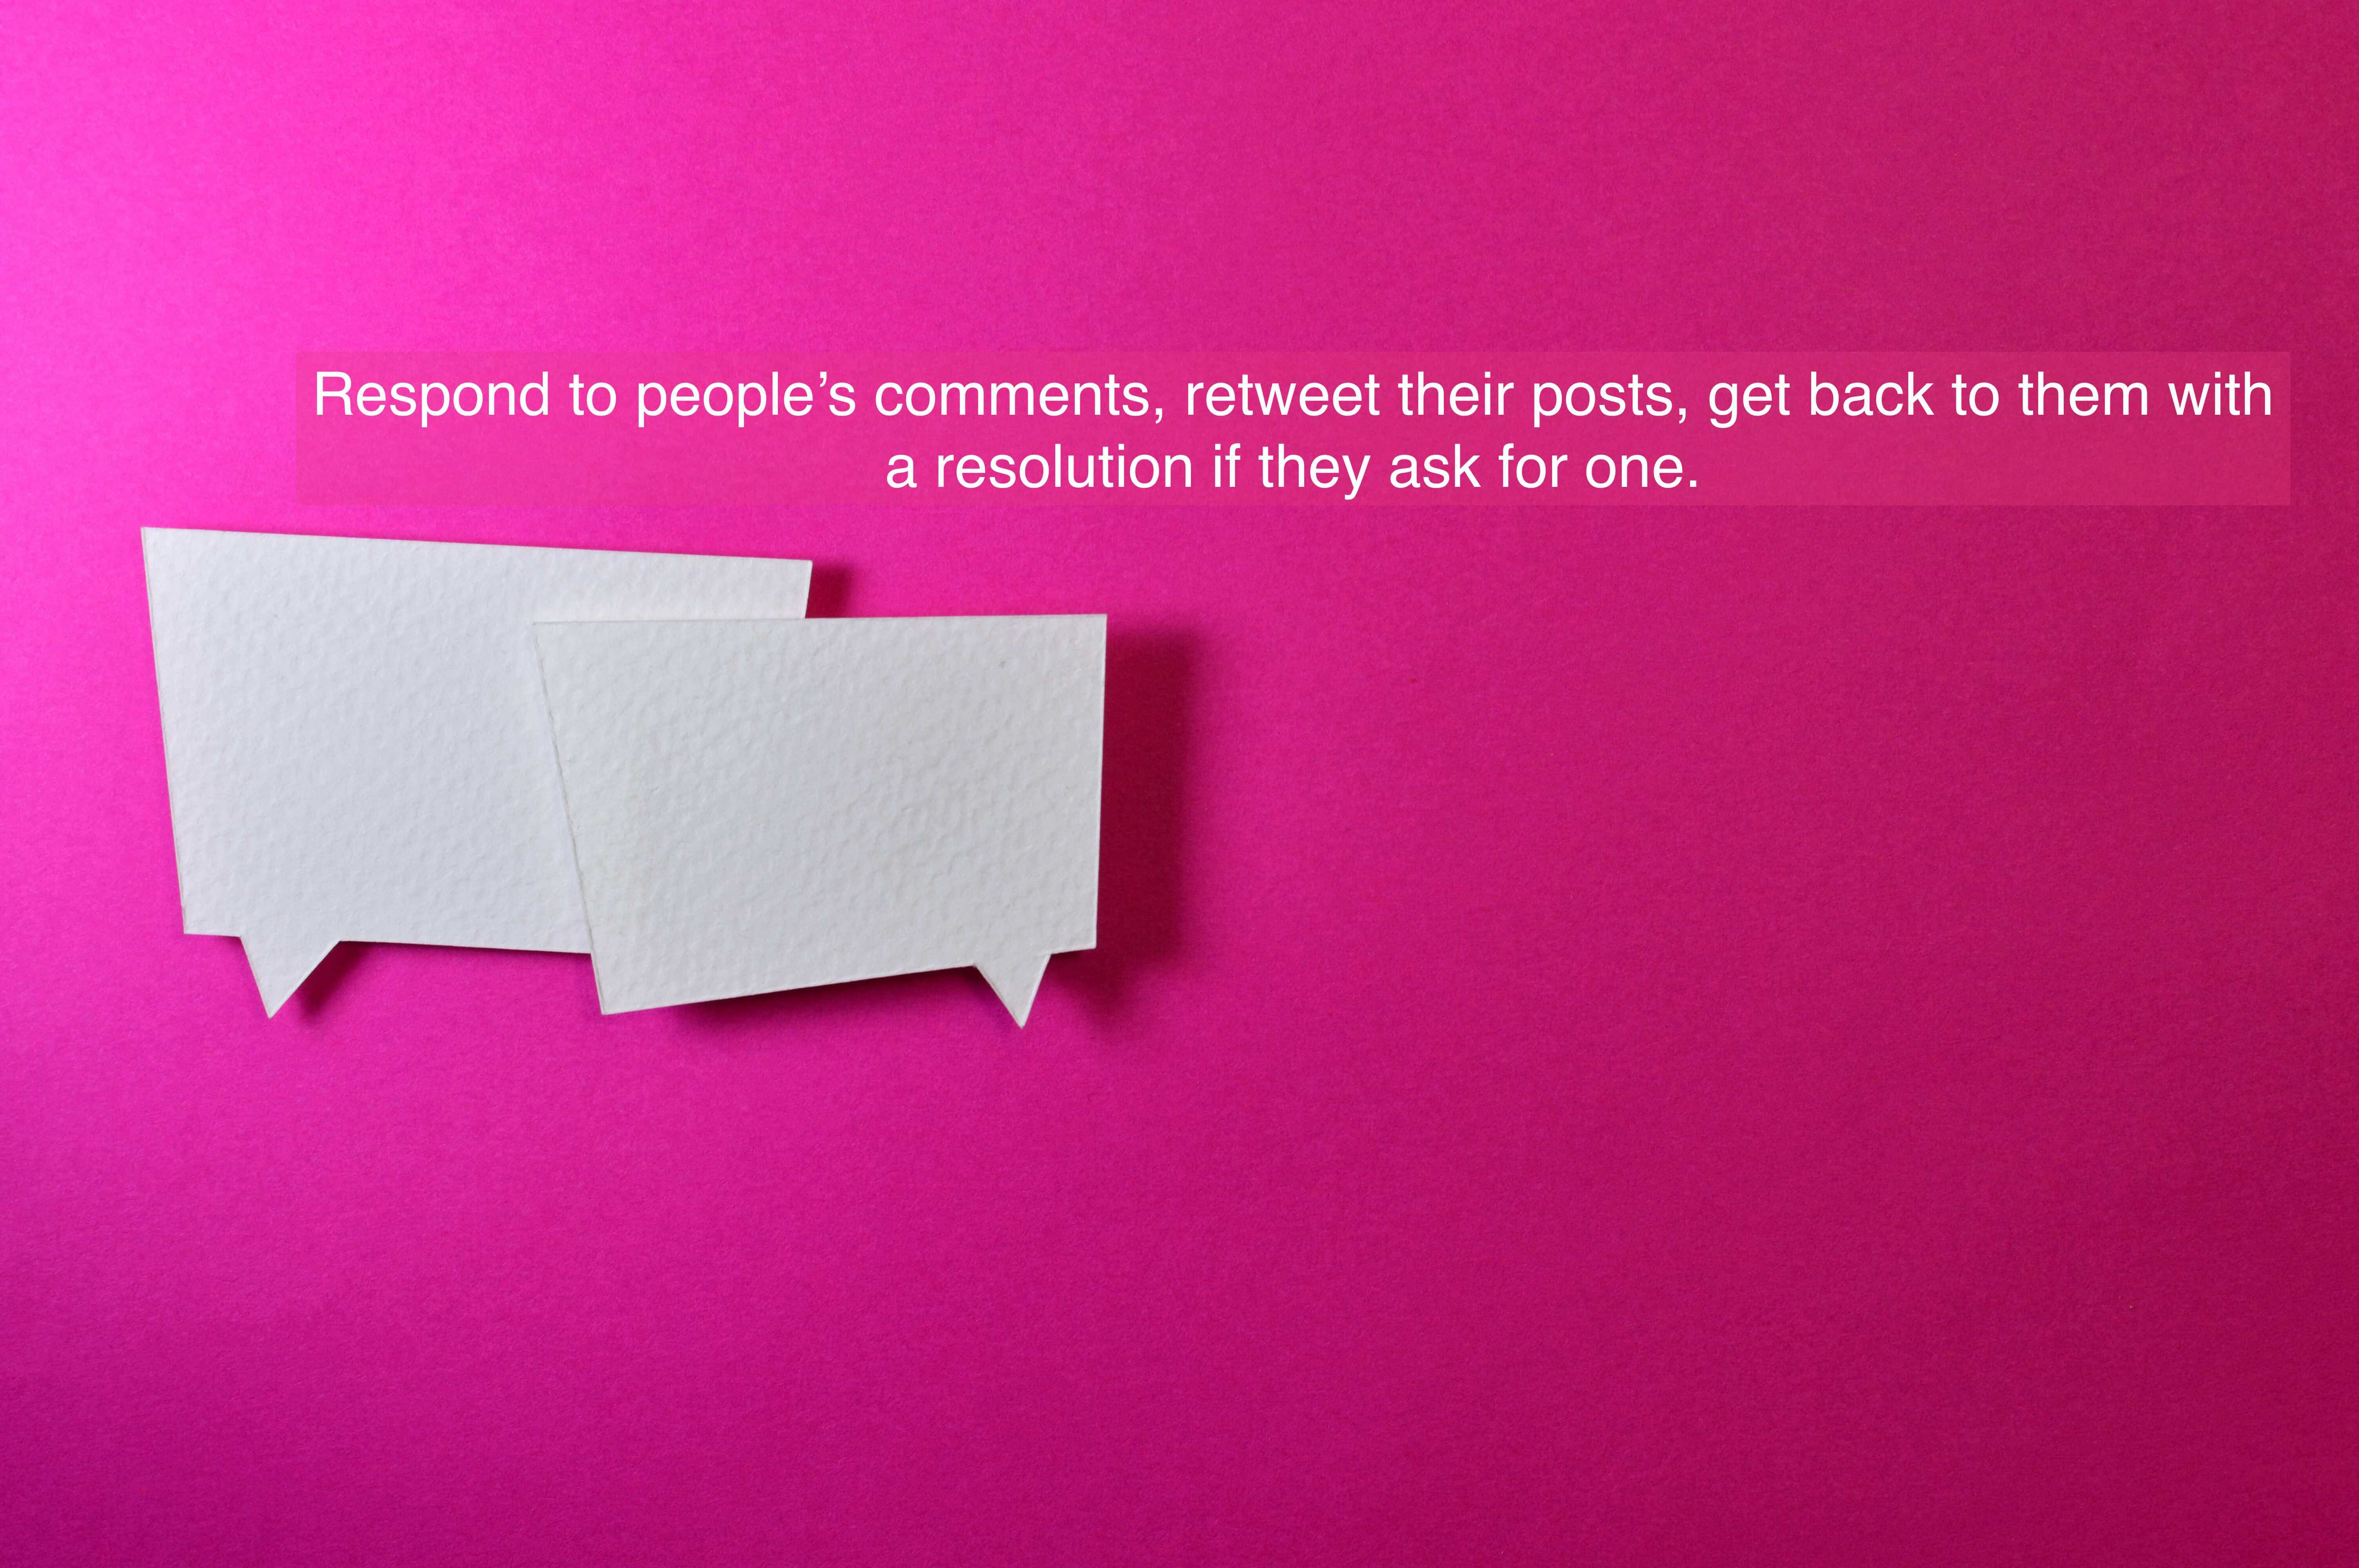 Respond to people's comments, retweet their posts, get back to them with a resolution if they ask for one.